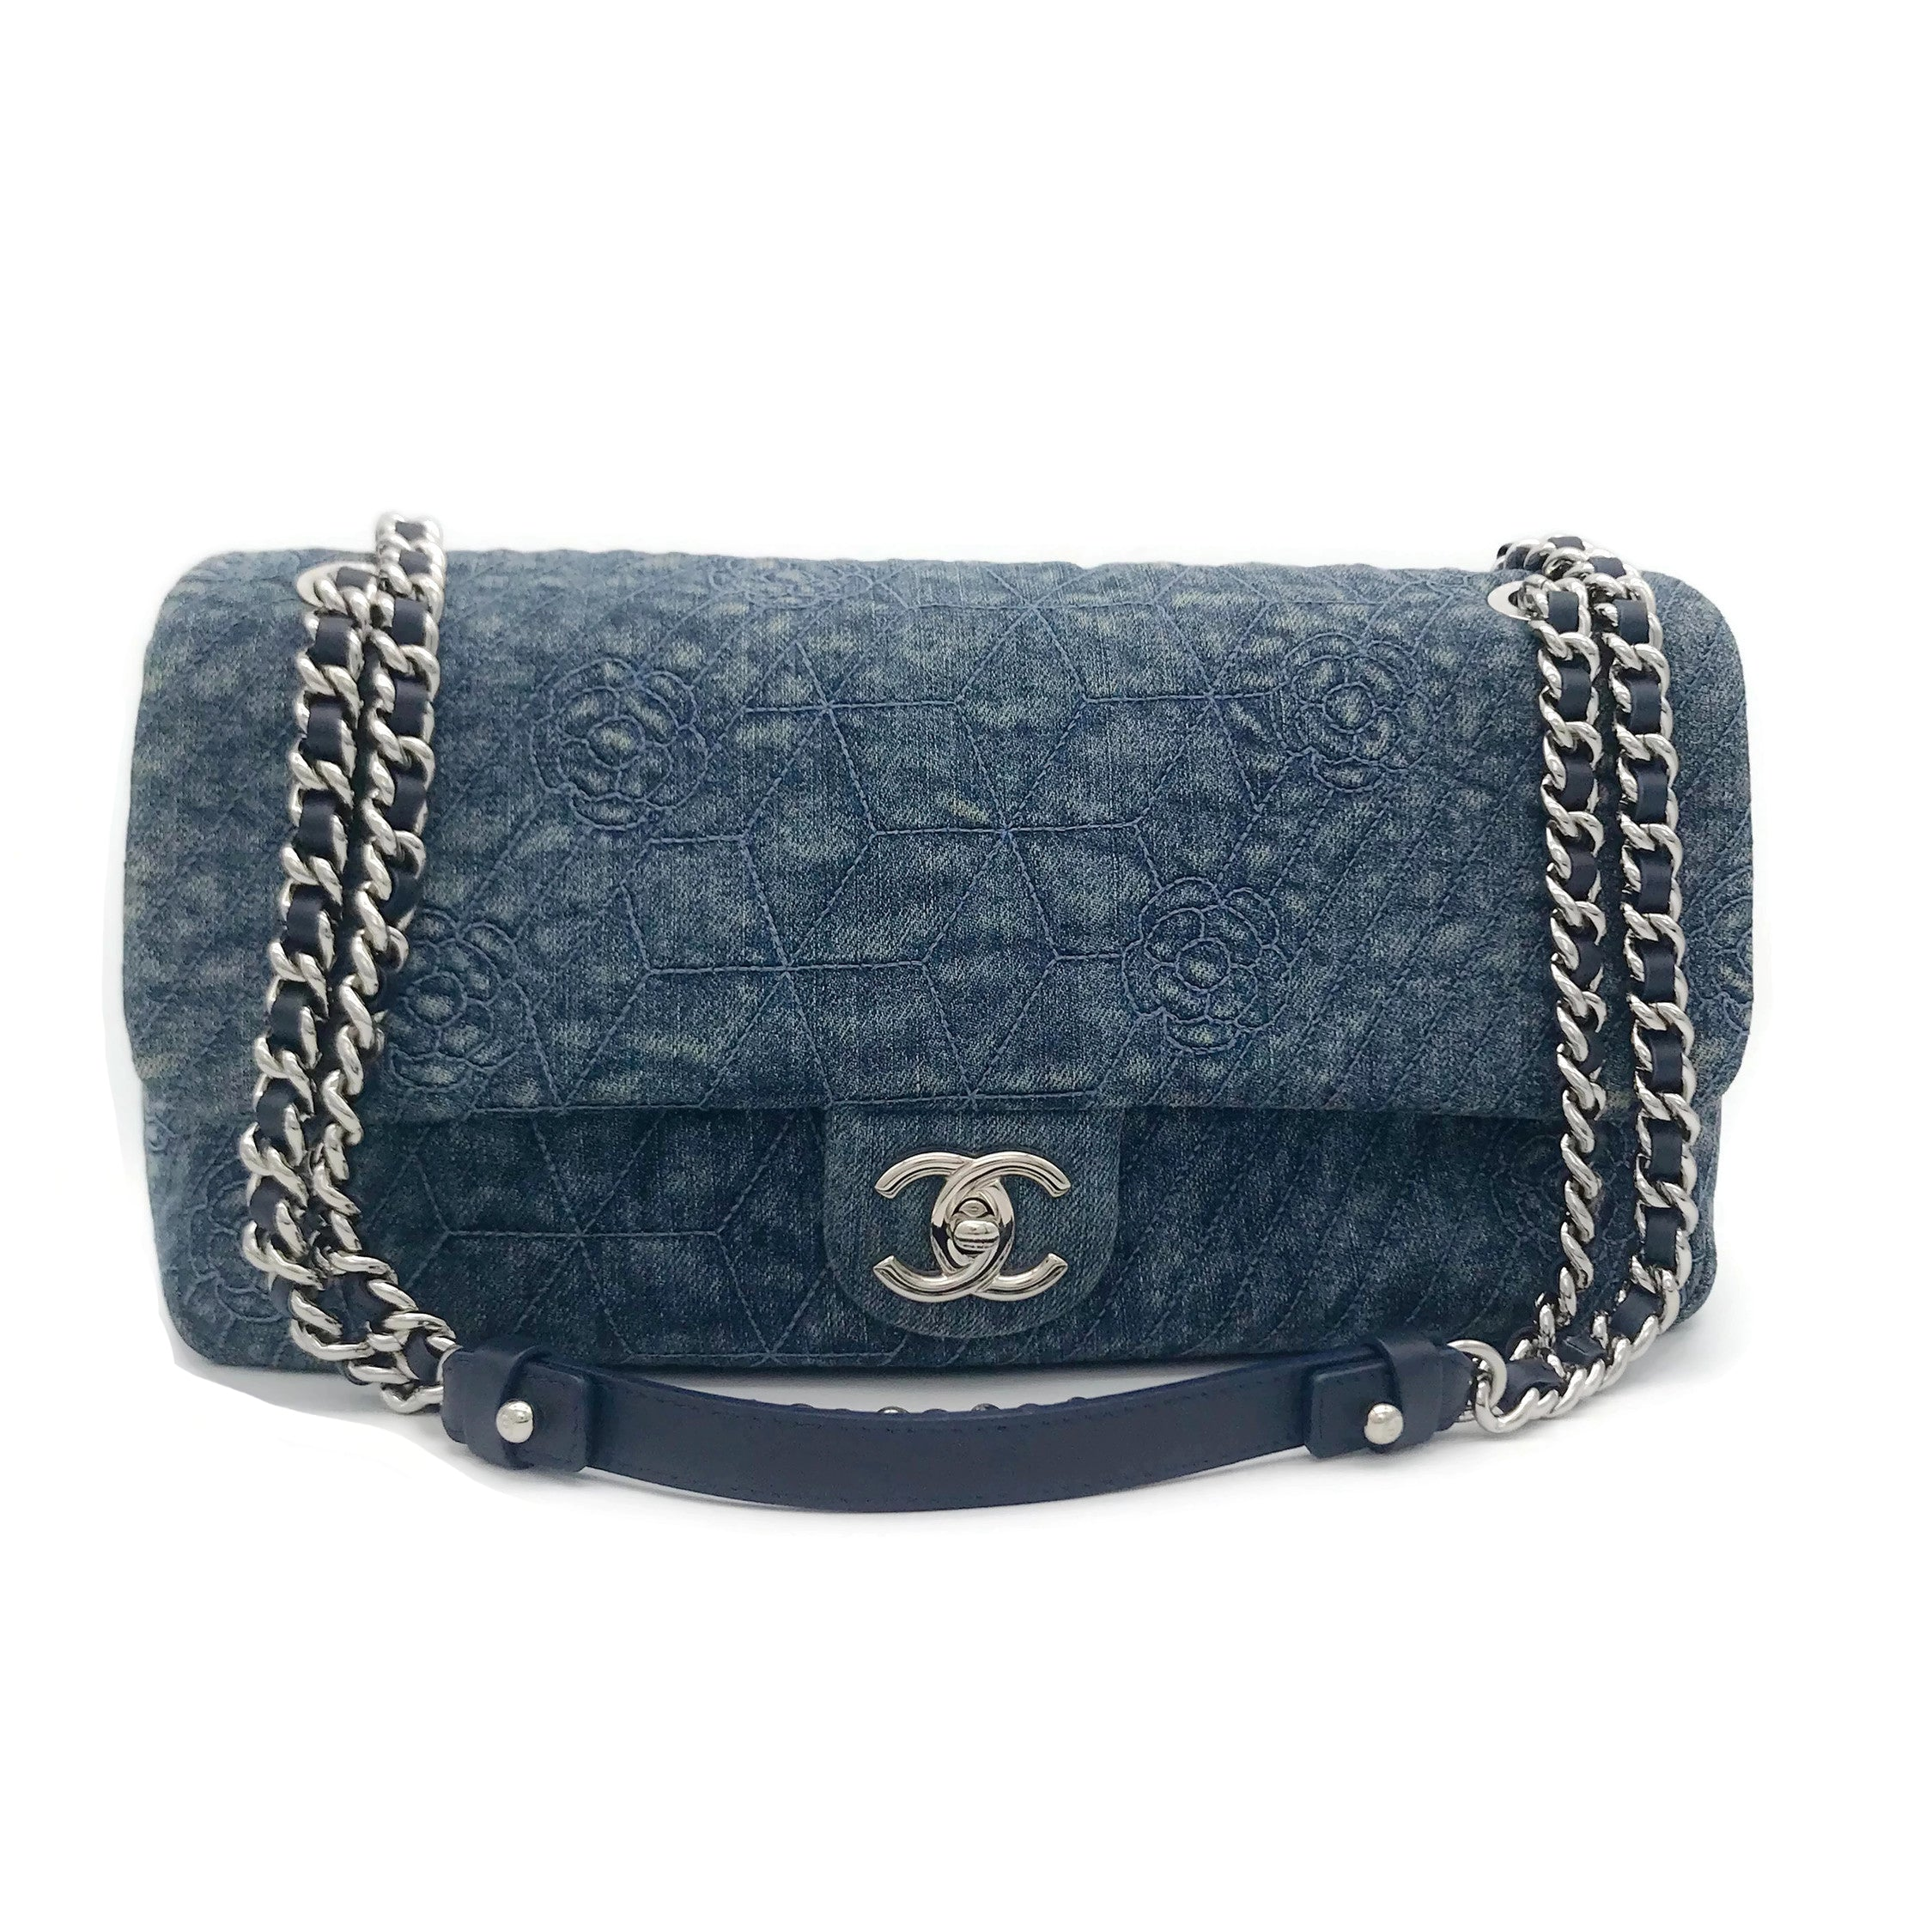 Chanel Flap Blue Denim Shoulder Bag